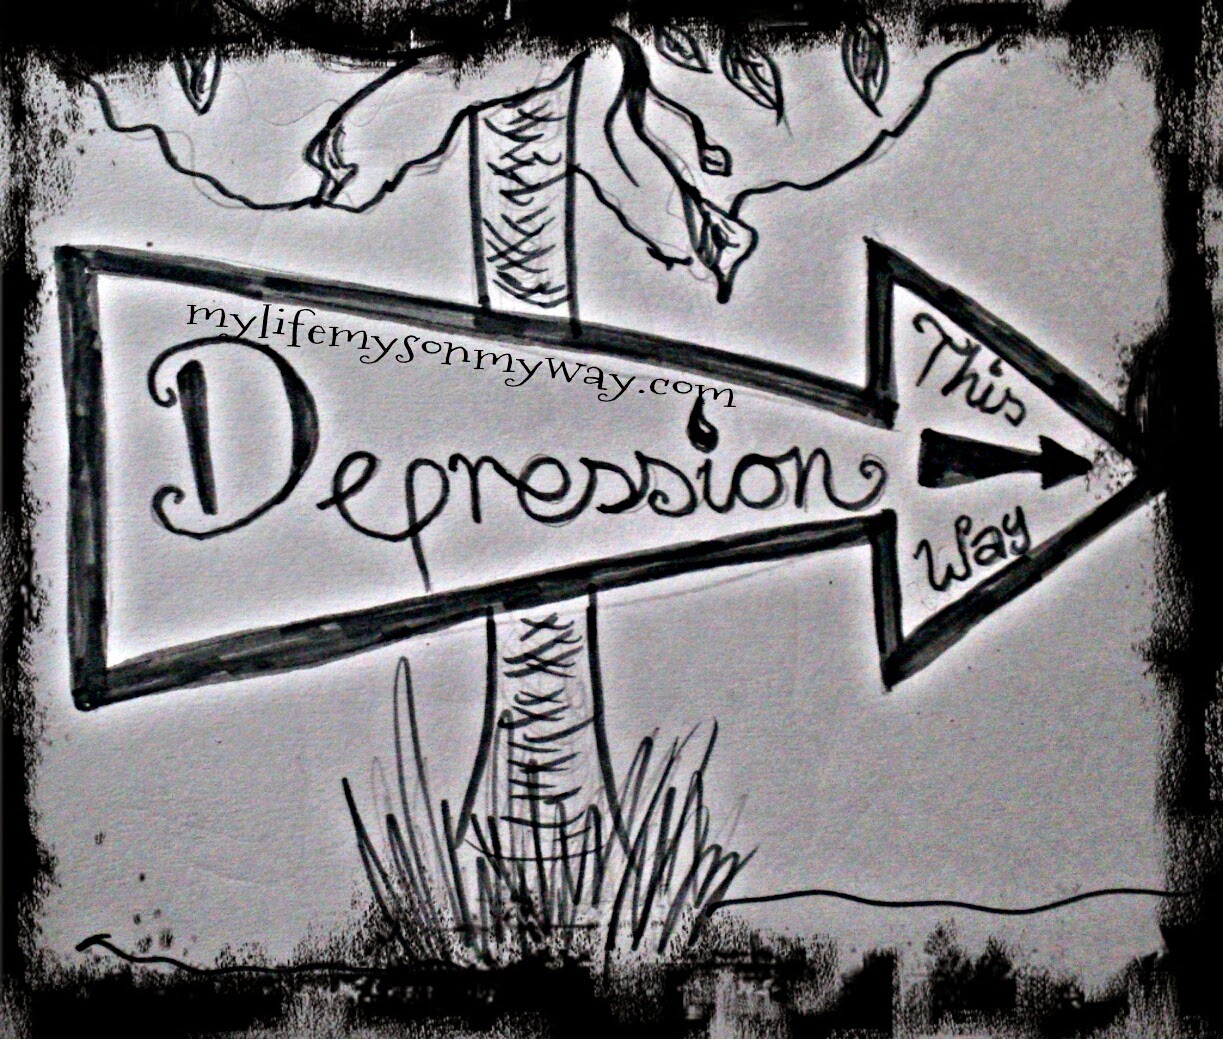 Depression, sign, this way, tree, dark, moody, pencil, art, drawing,